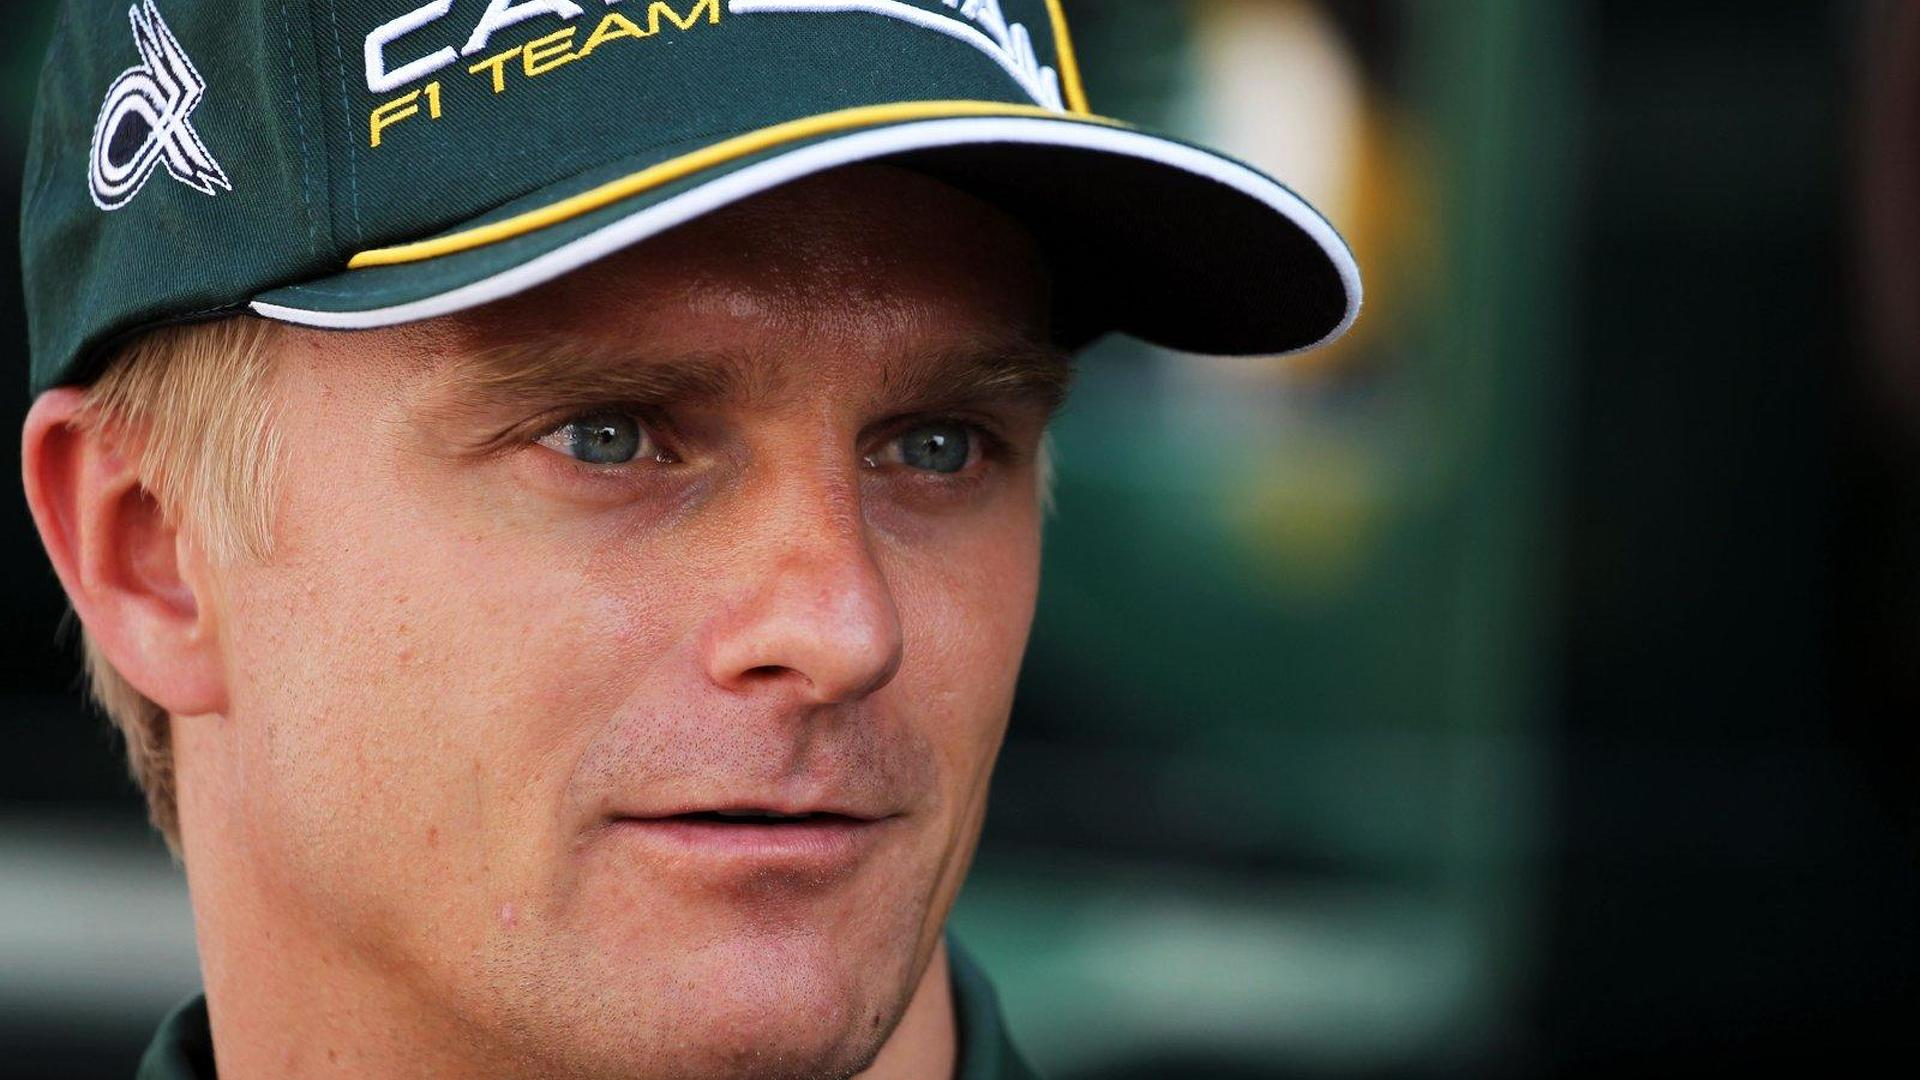 Caterham boss not denying Kovalainen rumours